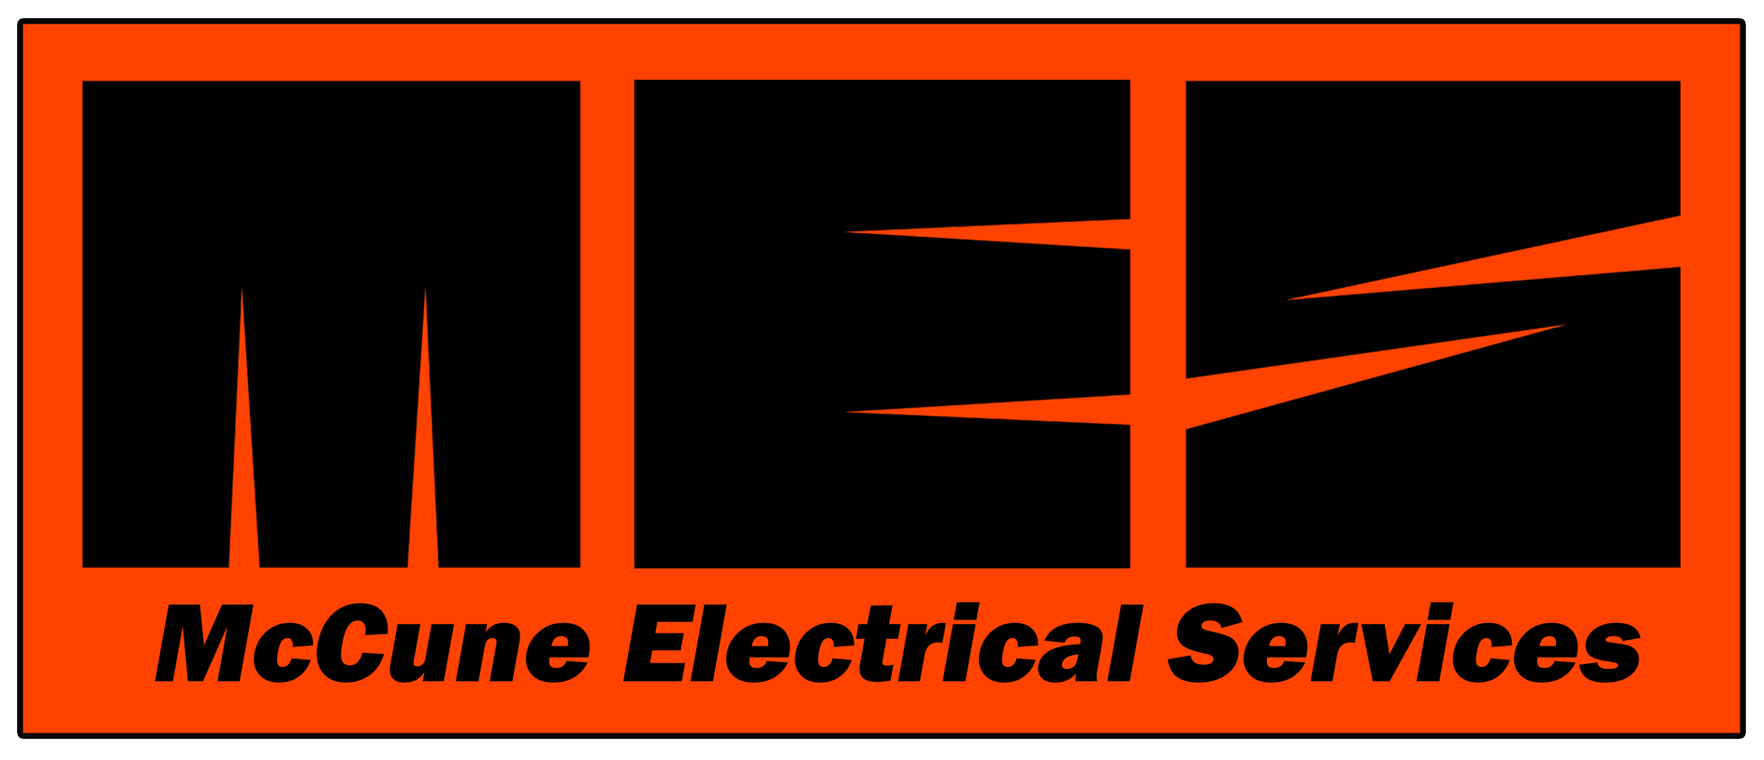 McCune Electrical Services